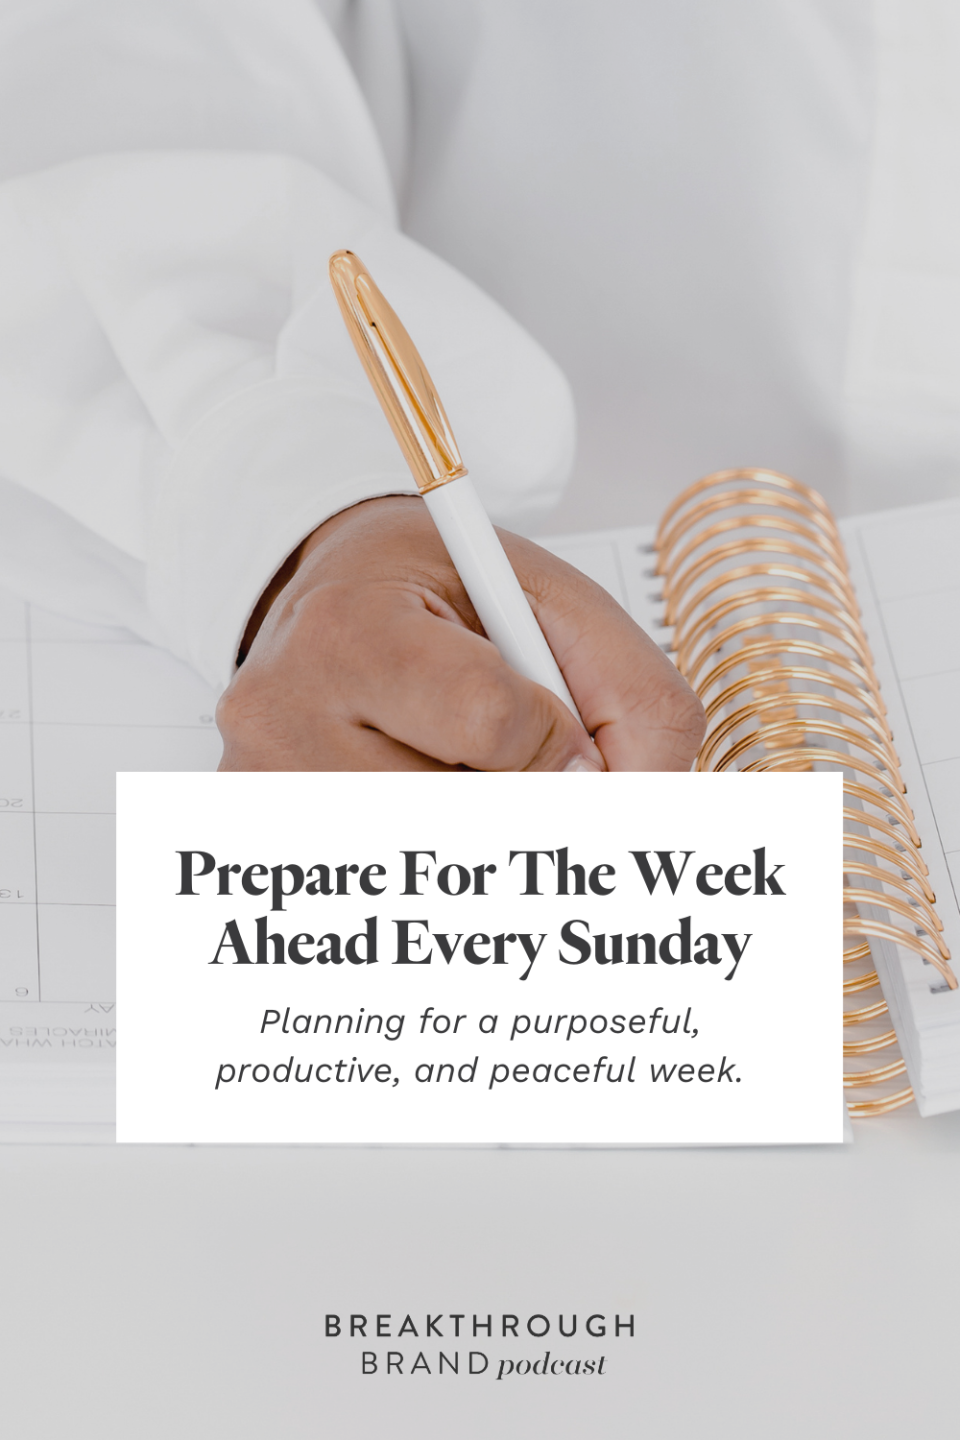 See how Elizabeth McCravy prepares for her week on Sundays to ensure a purposeful and productive week on the Breakthrough Brand Podcast.